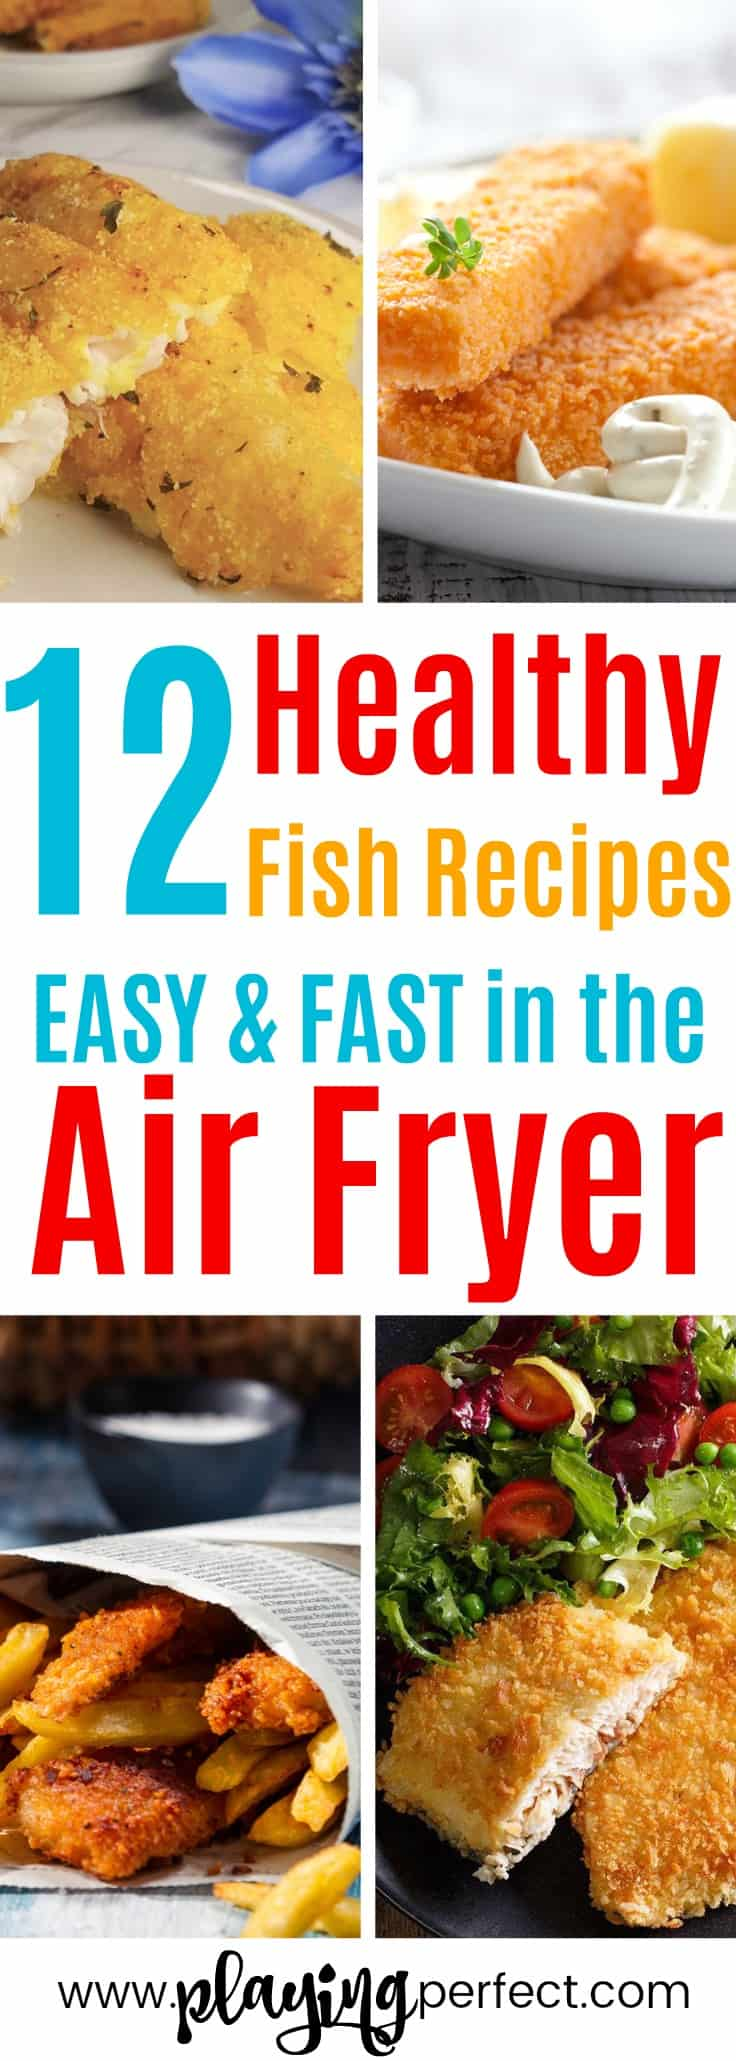 Air fryer fish recipes! If you're looking for some healthy air fryer recipes that are easy and quick, you're going to love these easy air fryer recipes! Click over to discover the best fish air fryer recipes that will be the best air fryer recipes ever! FREE printable pack too! | playingperfect.com |